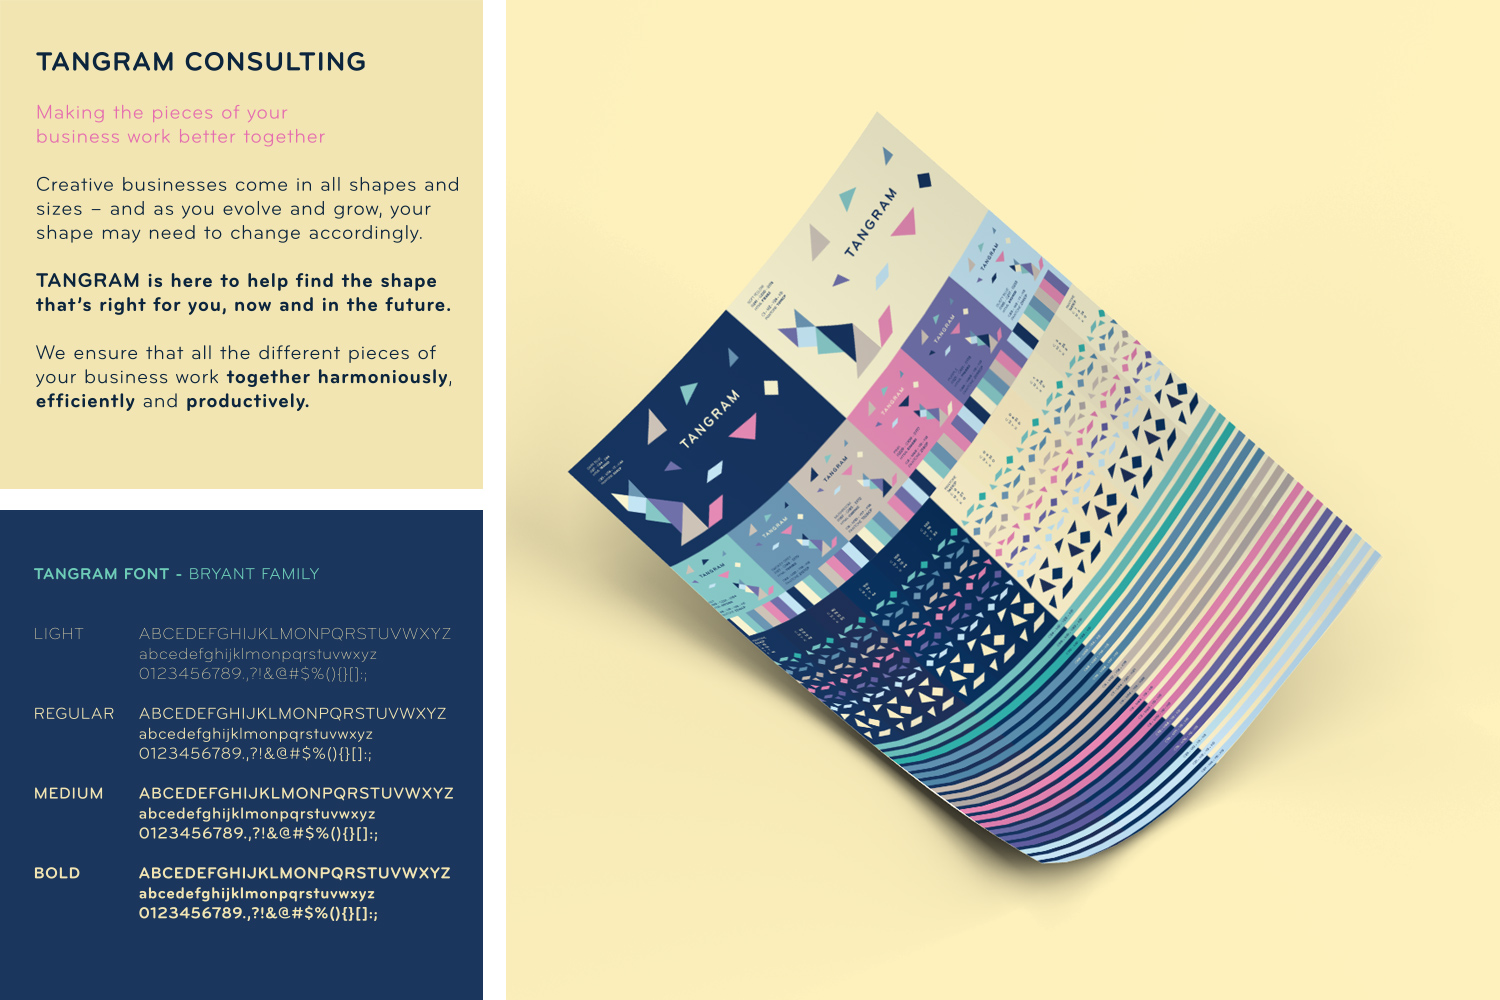 Tangram Consulting Brand Assets and Colour Print Test Poster